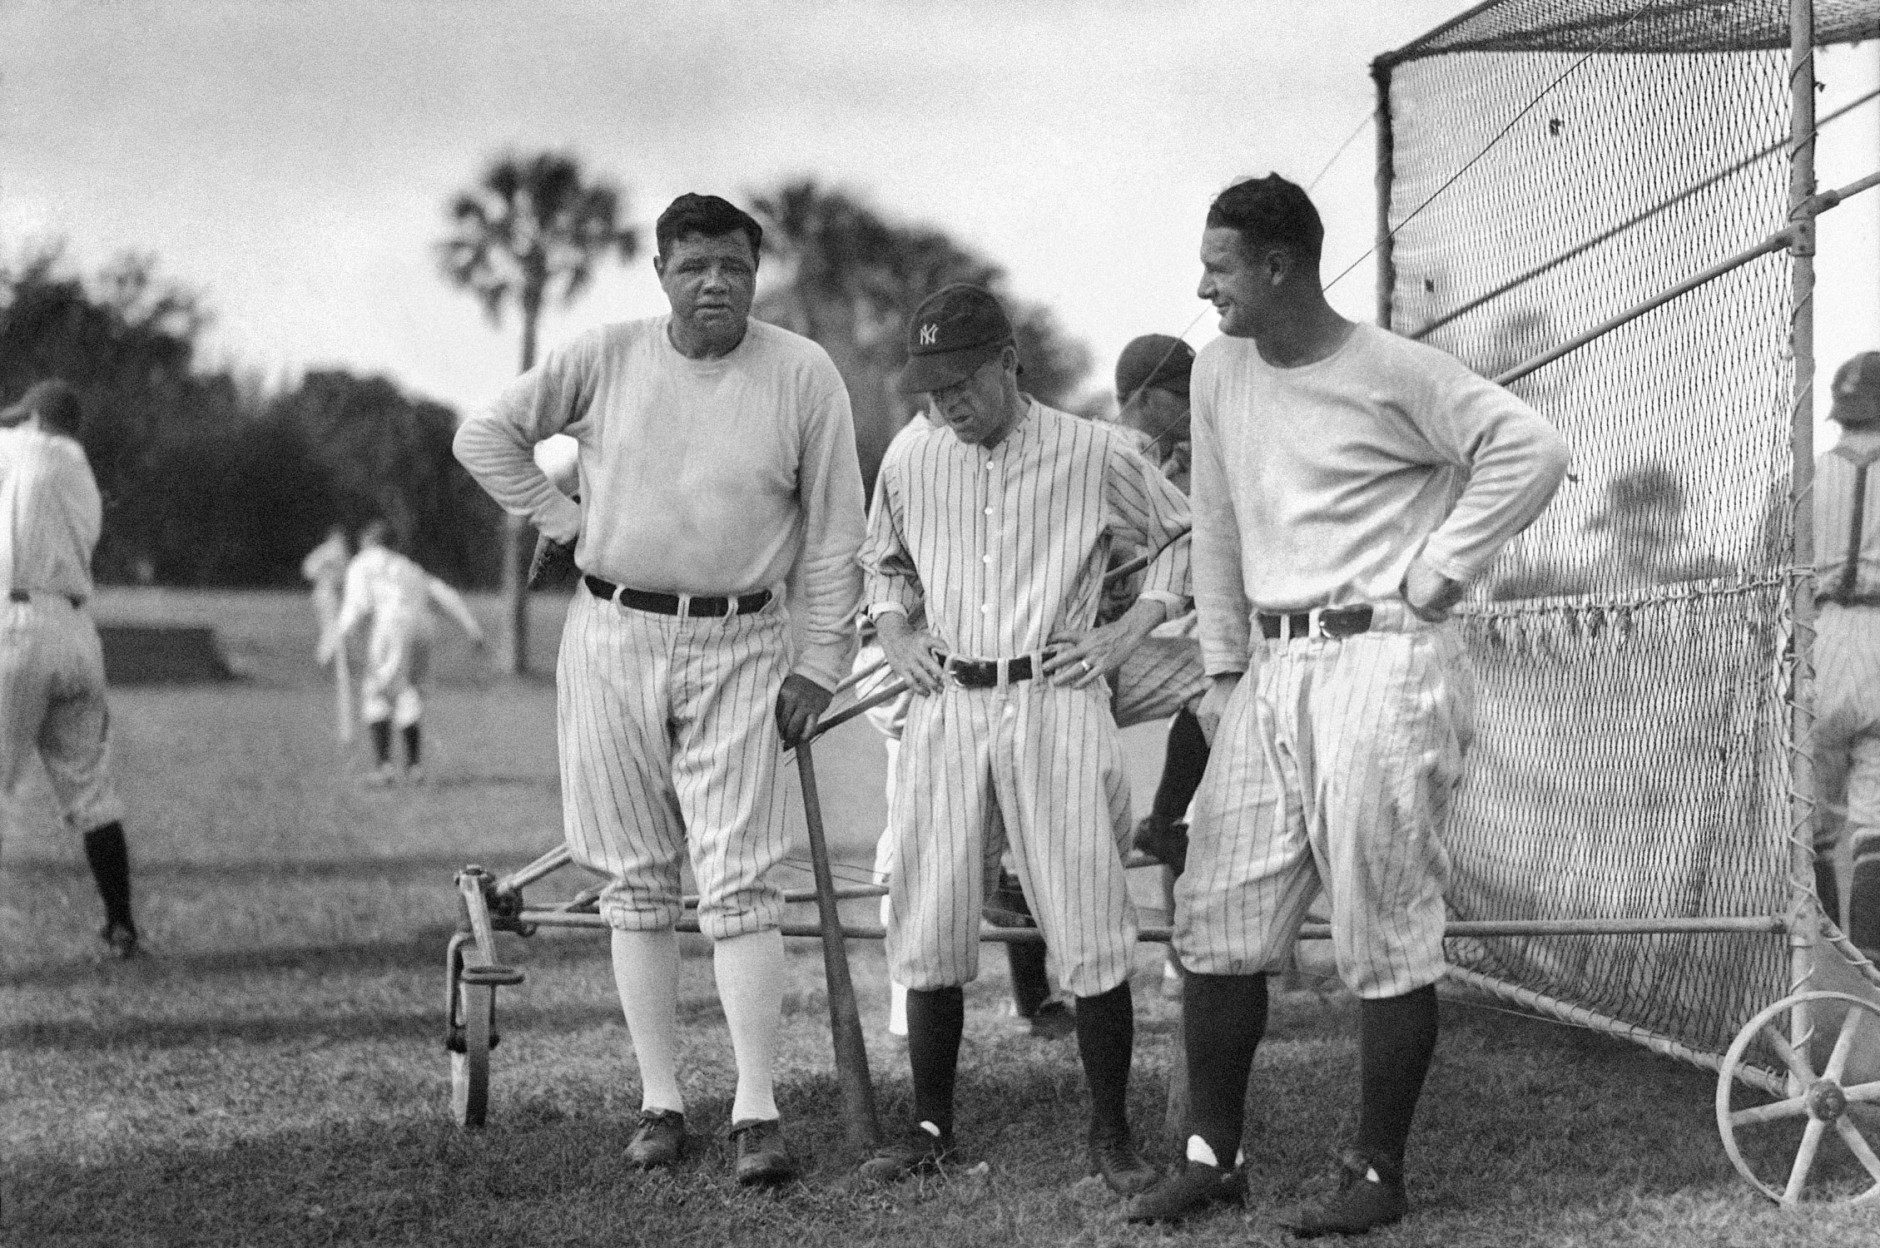 Yankees legends Babe Ruth (left) and Lou Gehrig (right) chat outside the batting cage in 1929. (AP Photo)